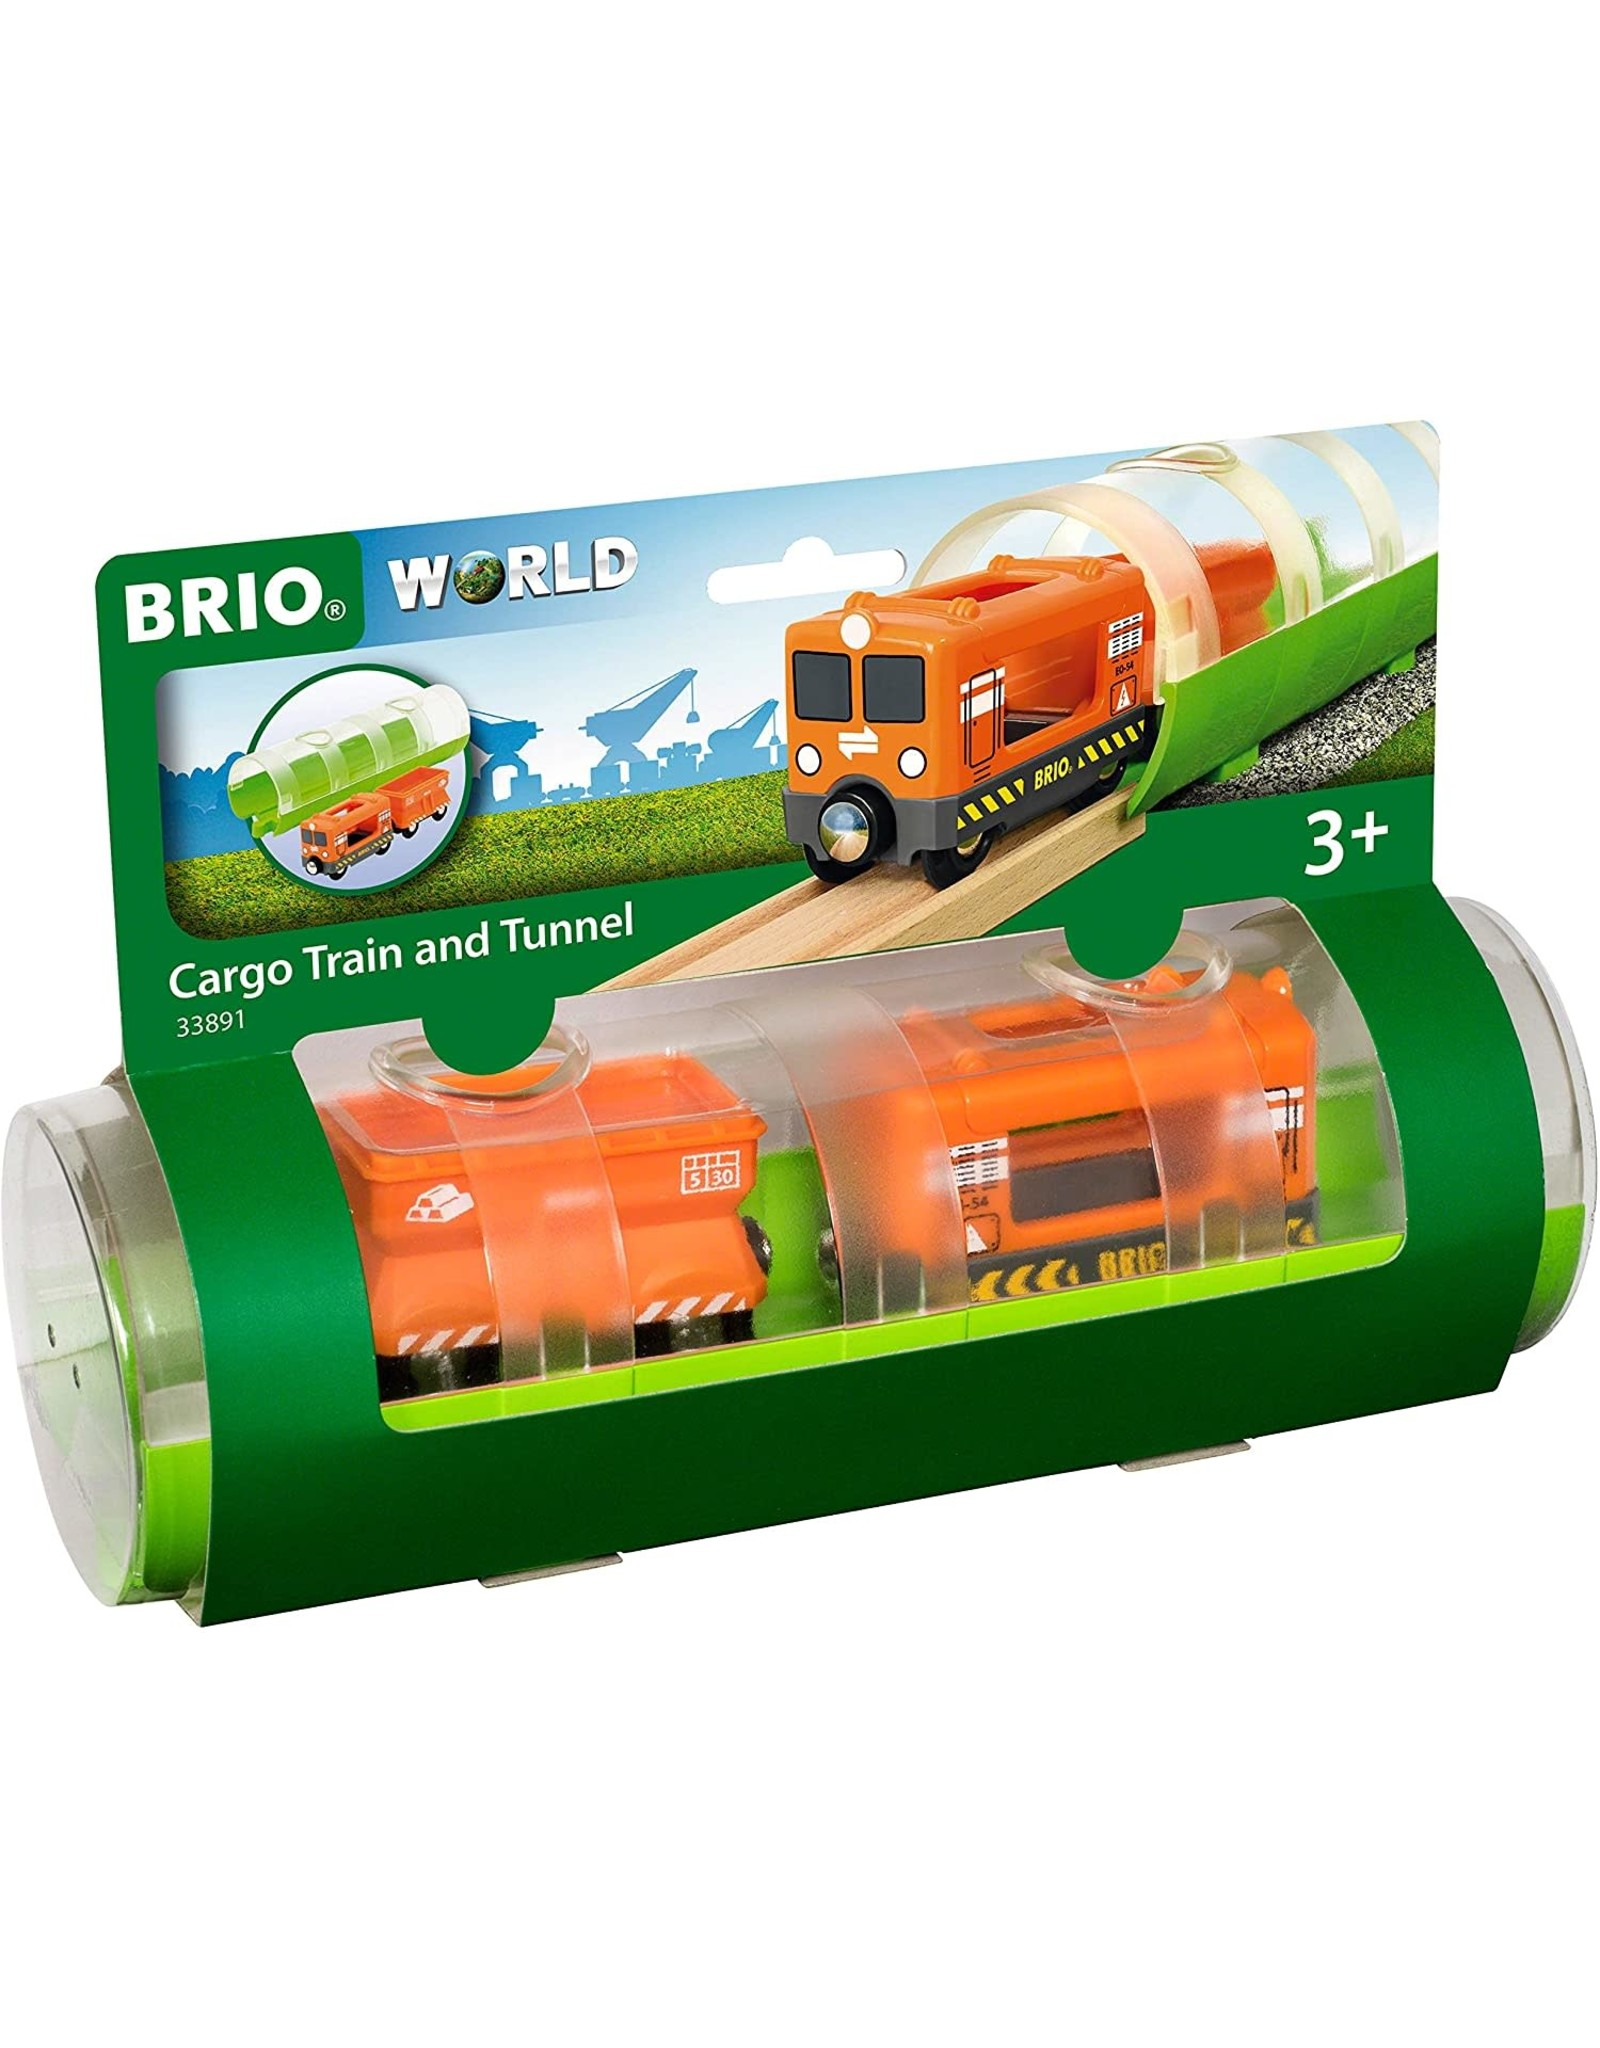 Brio BRIO Cargo Train and Tunnel